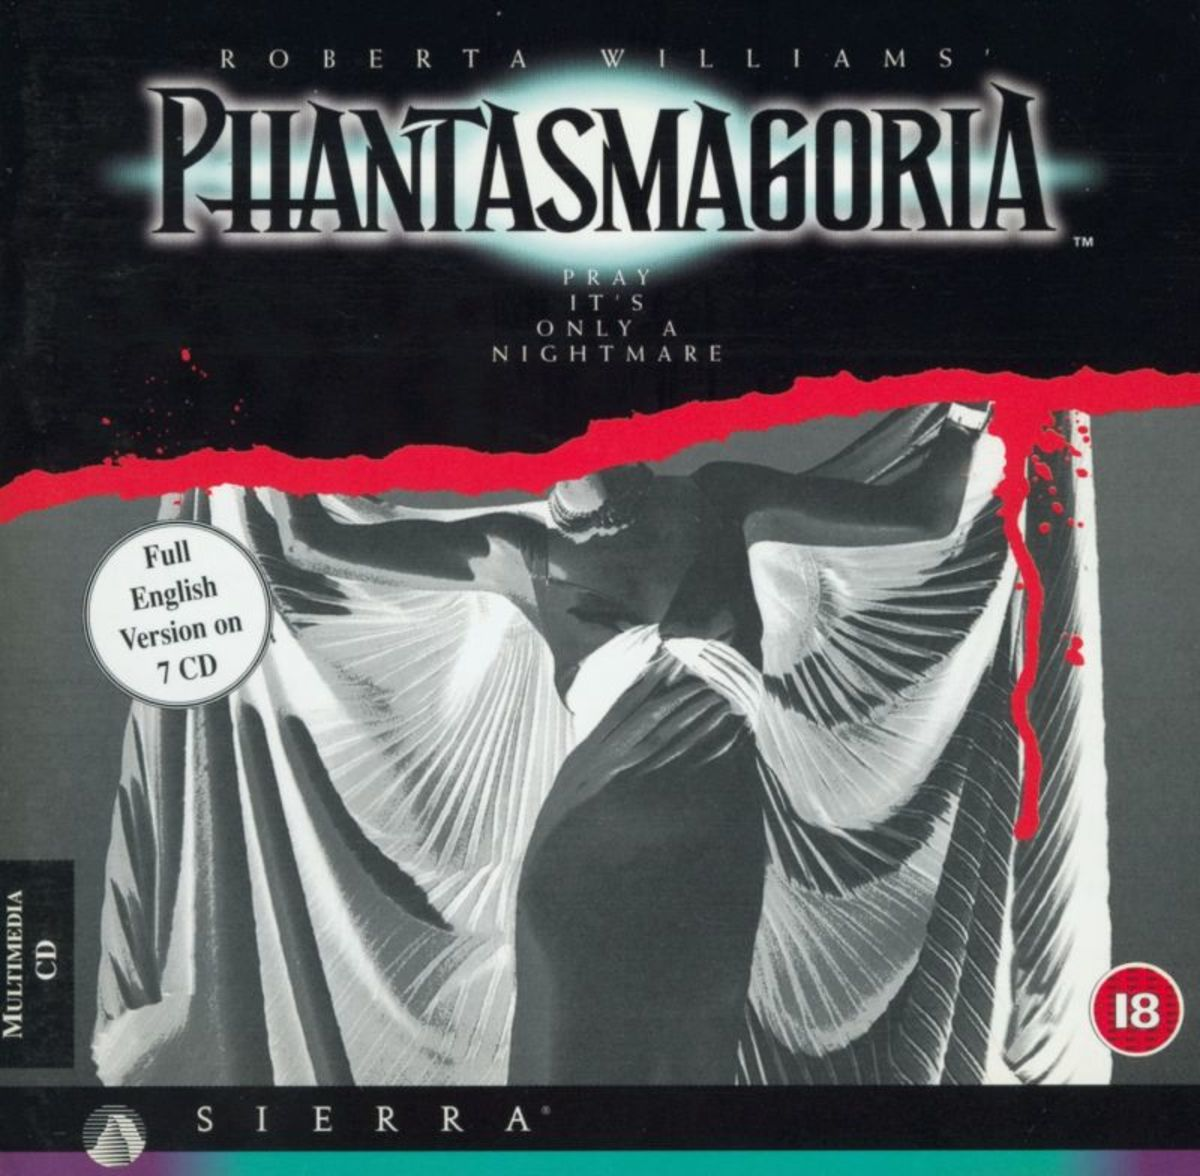 Phantasmagoria jewel case cover.